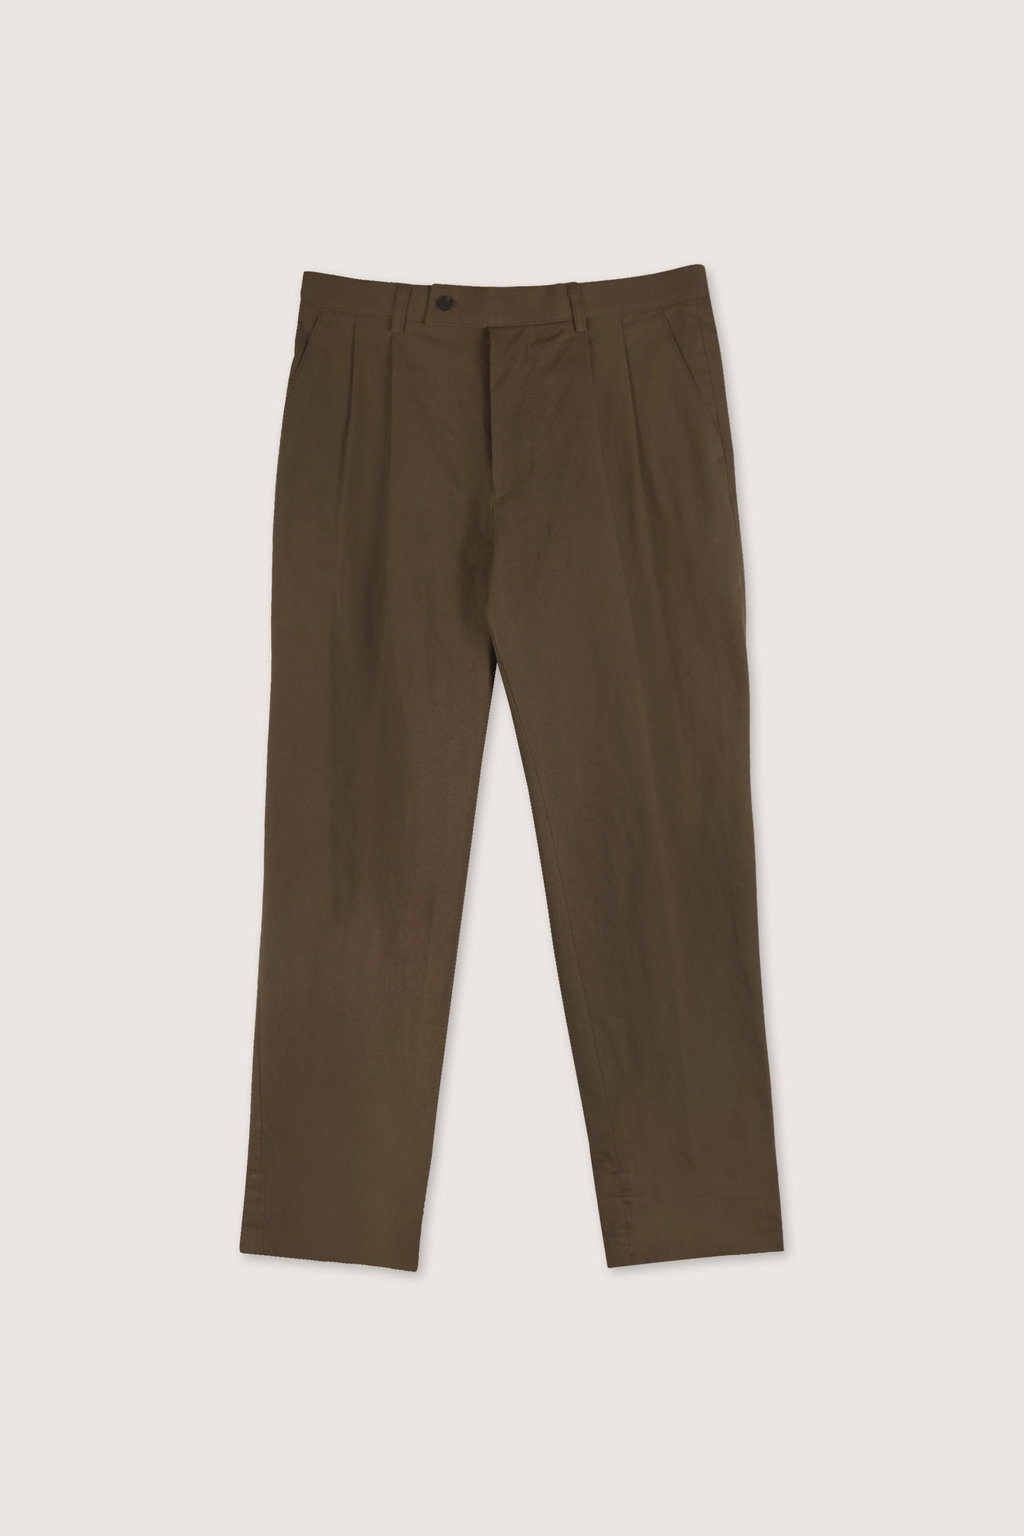 Pant H065 Olive 9